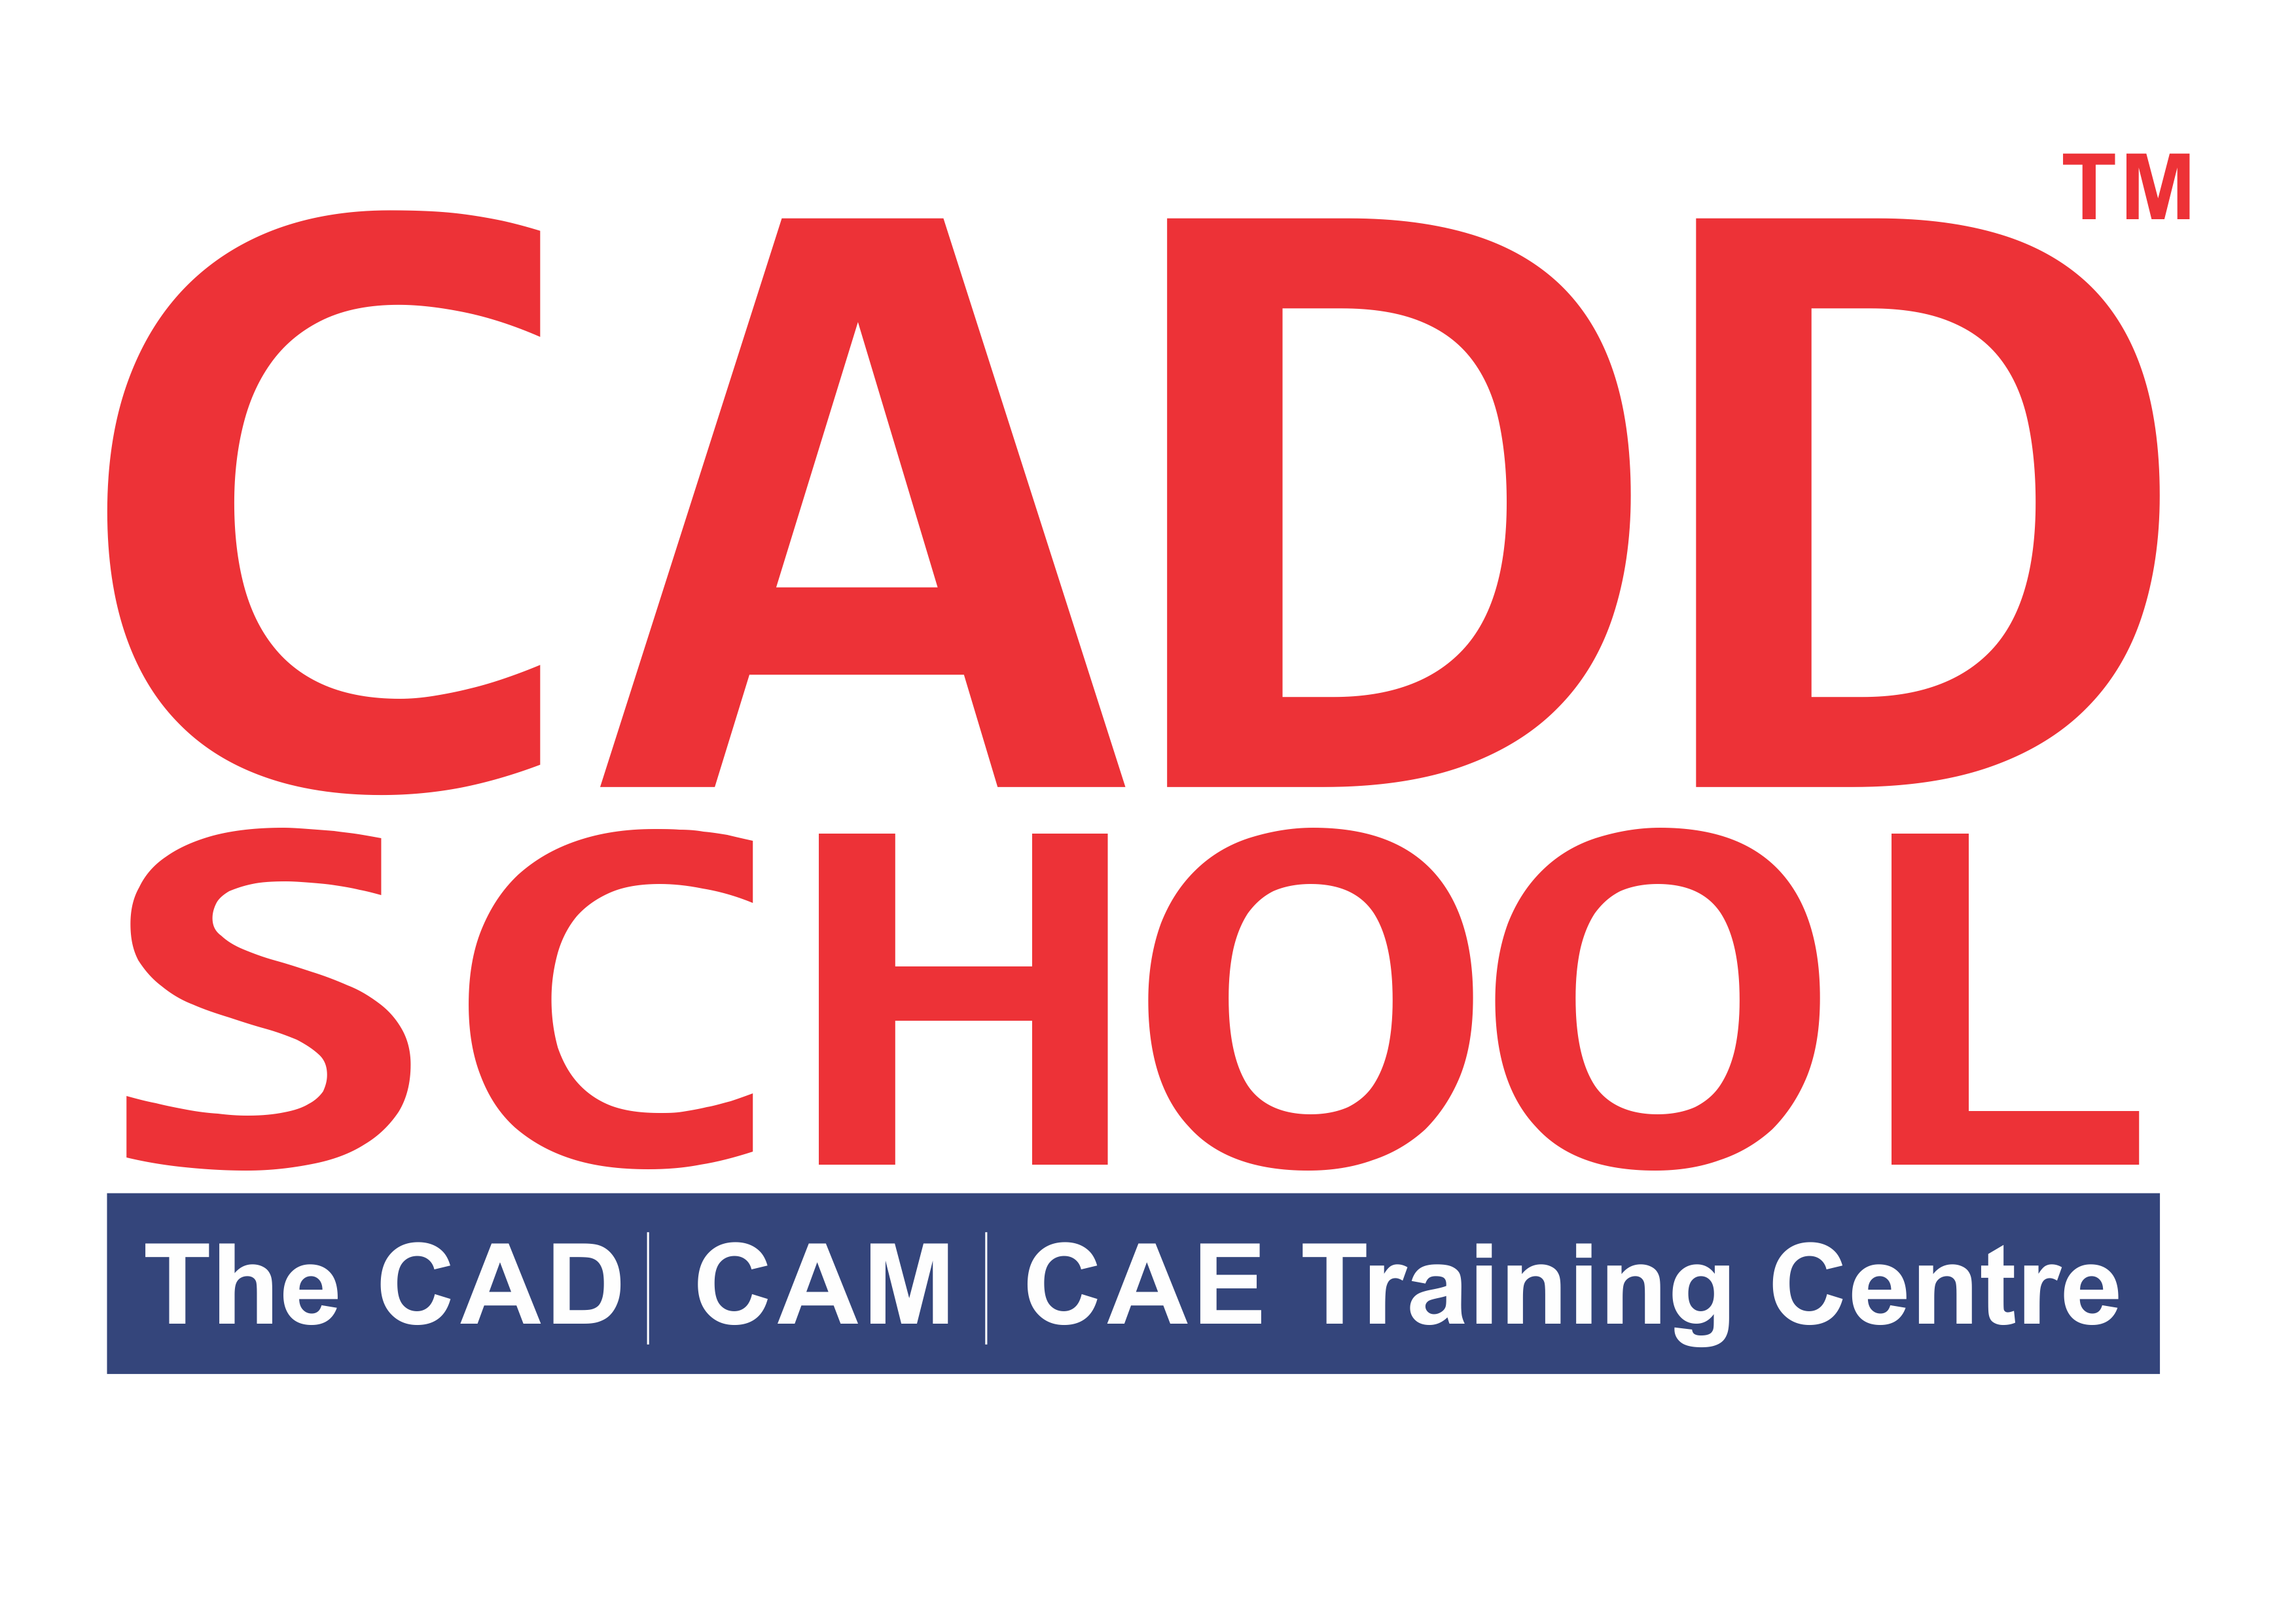 Autodesk Authorized Training Centre Cadd School Is In Chennai Cadd